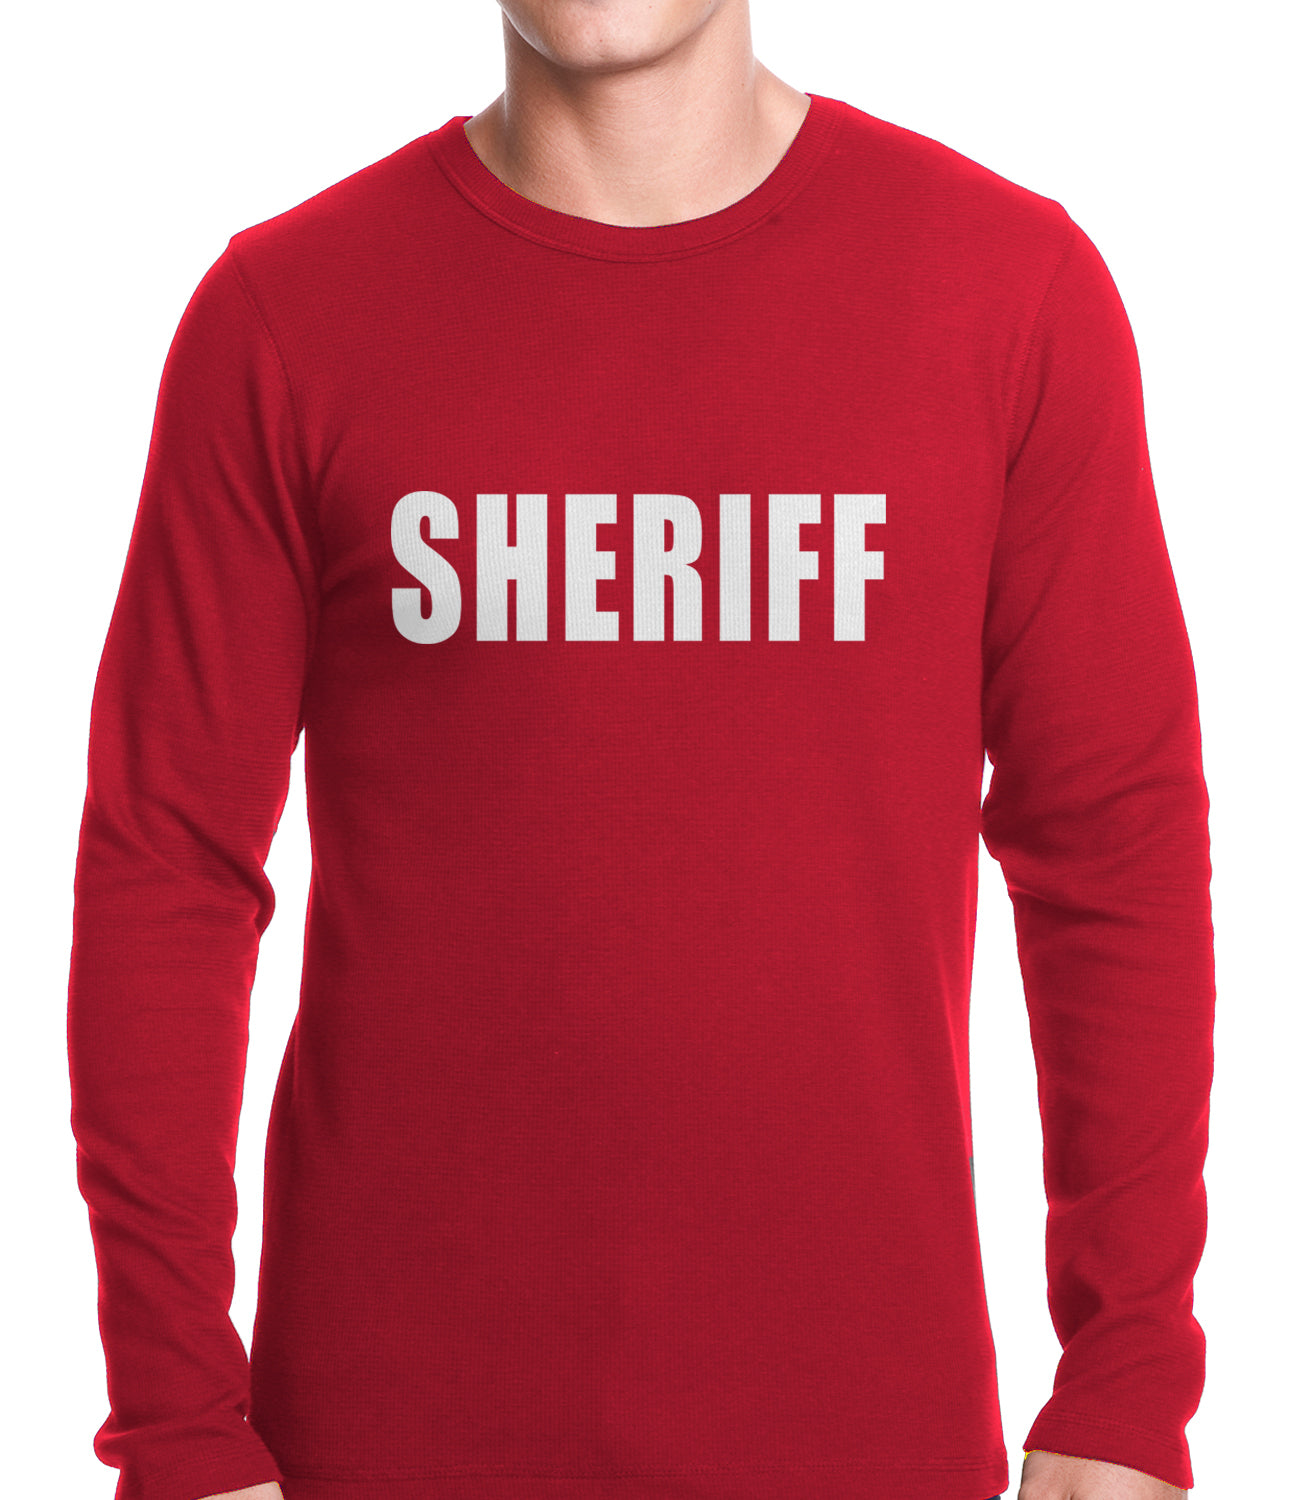 Sheriff Costum Thermal Shirt